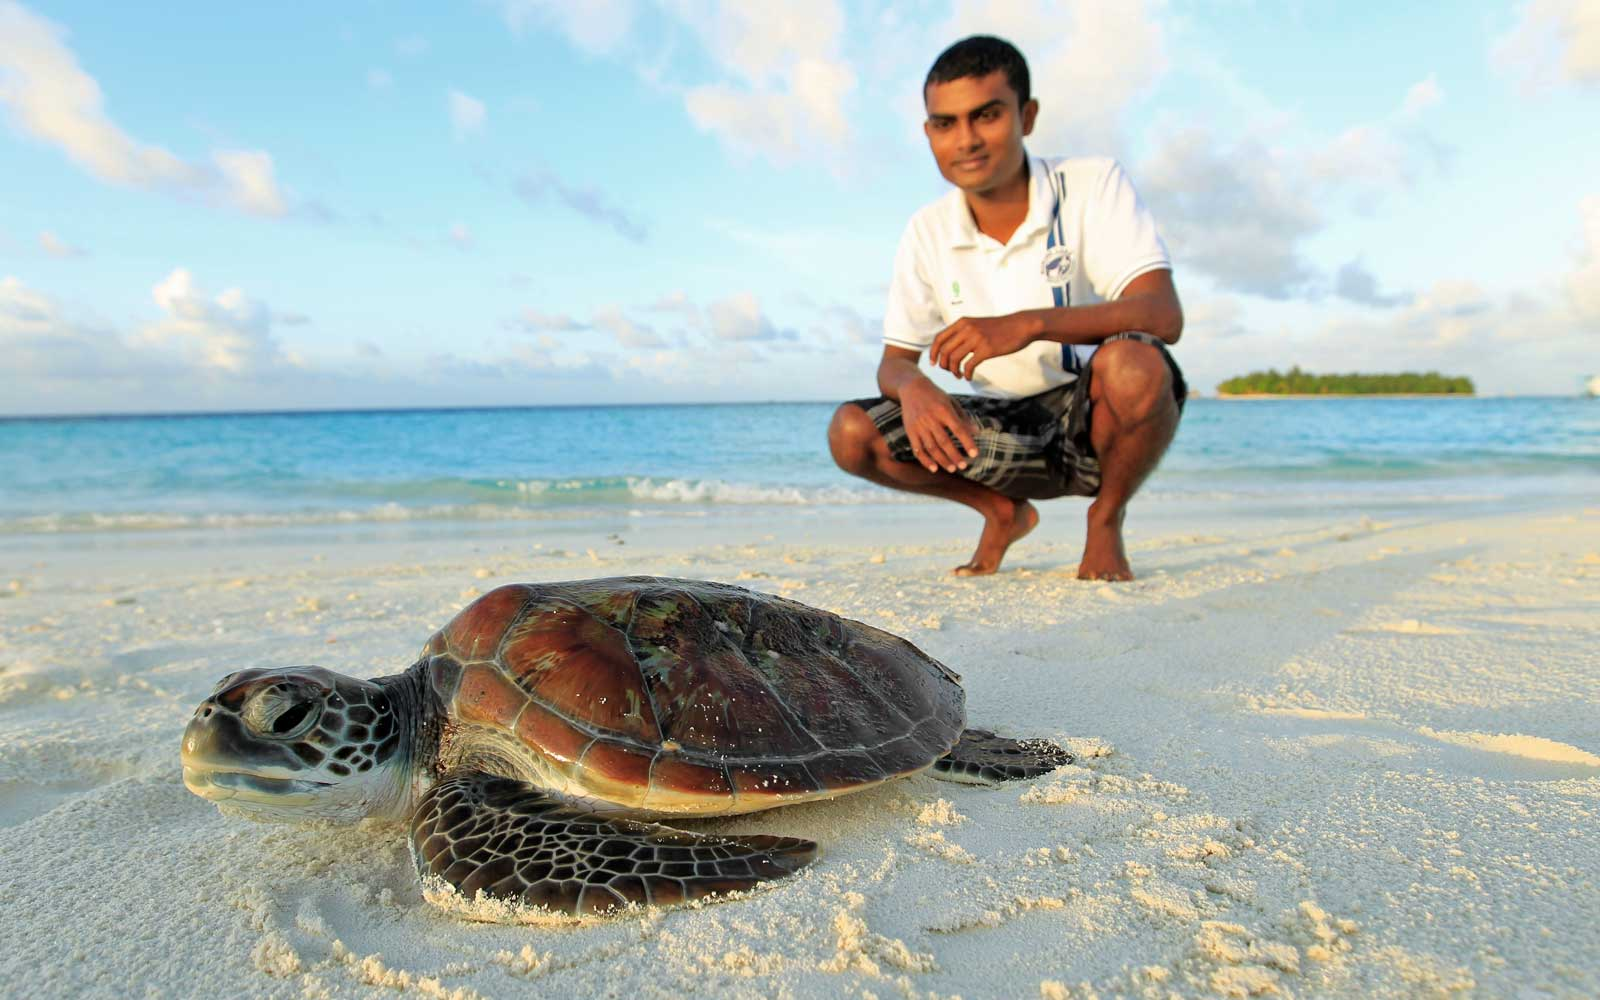 Turtle protection program at the Banyan Tree Vabbinfaru resort in the Maldives